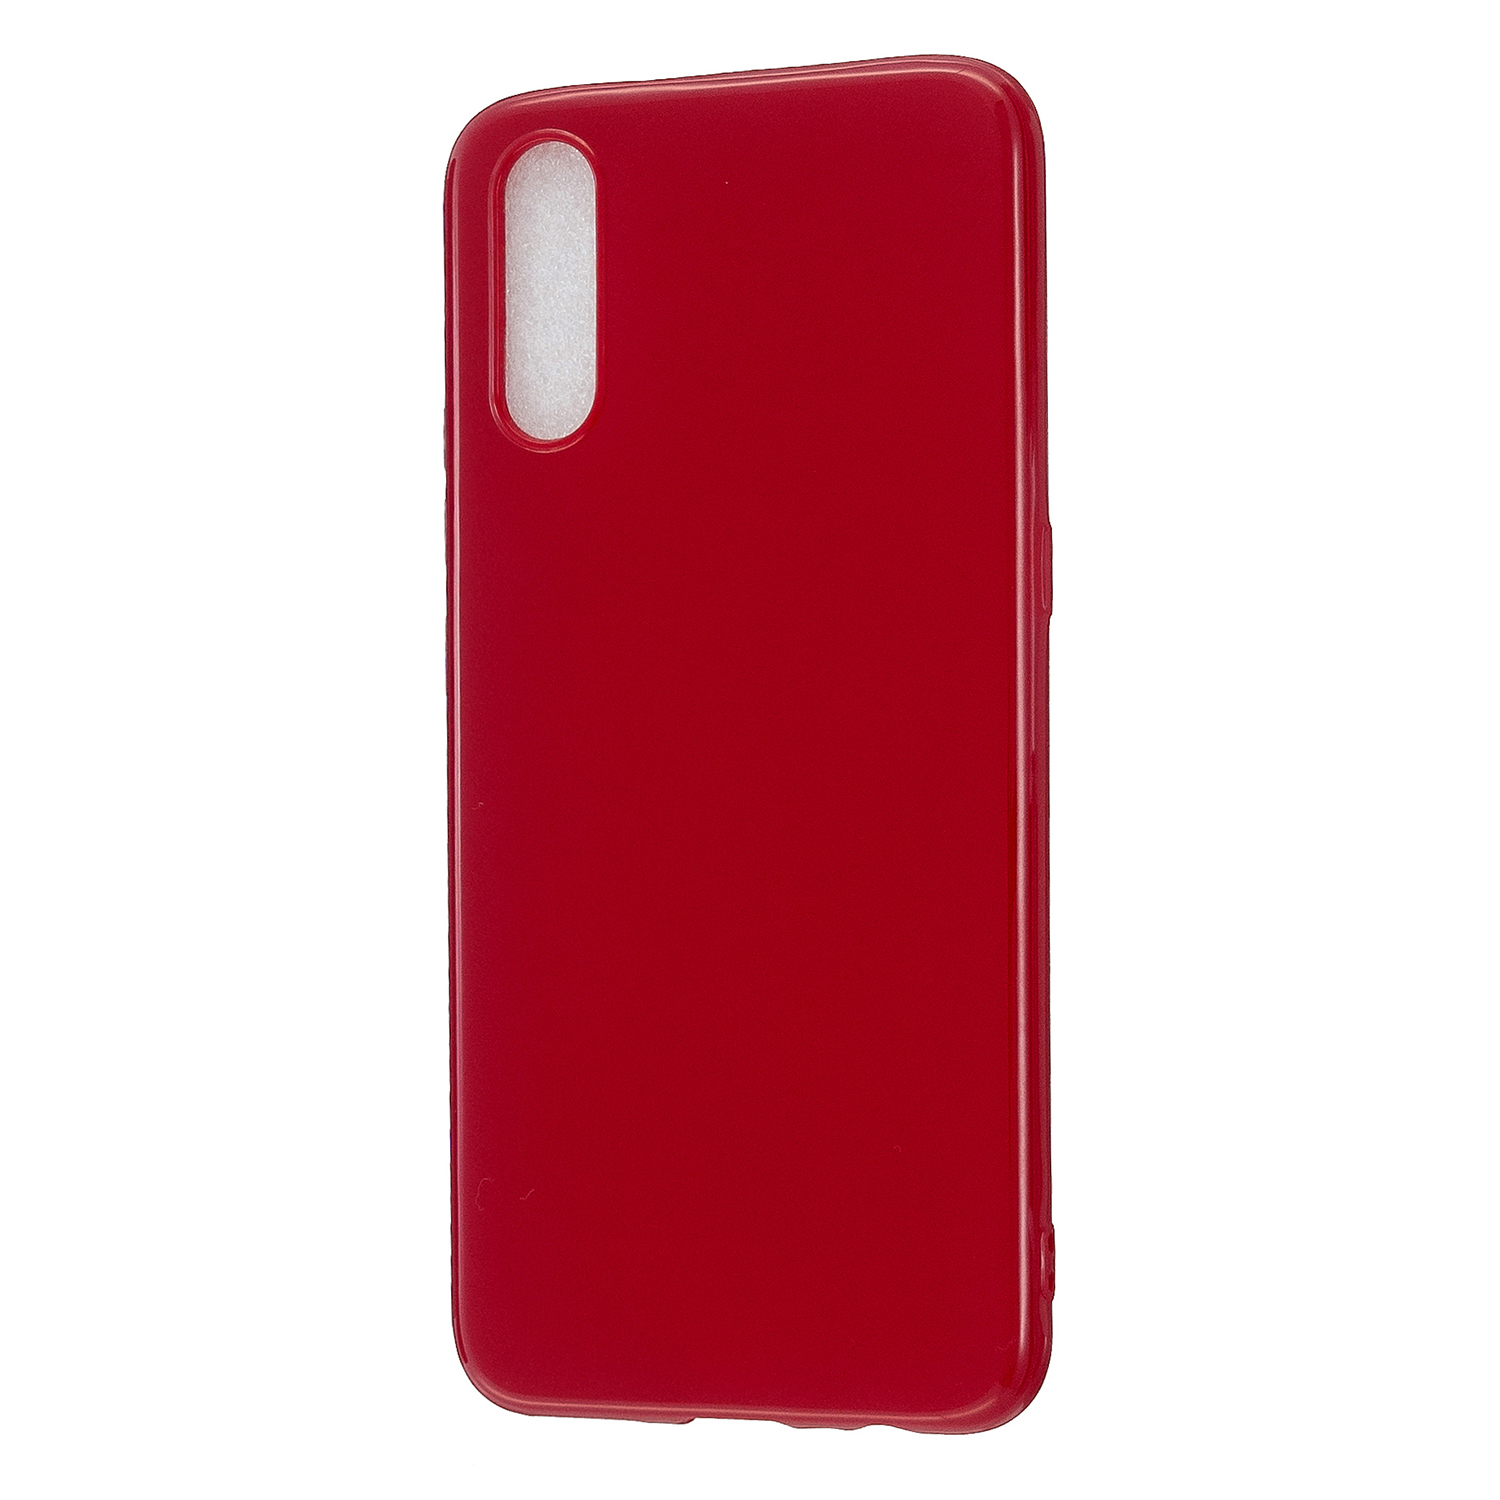 For VIVO IQOO Neo/Y97 Glossy TPU Phone Case Mobile Phone Soft Cover Anti-Slip Full Body Protection Rose red